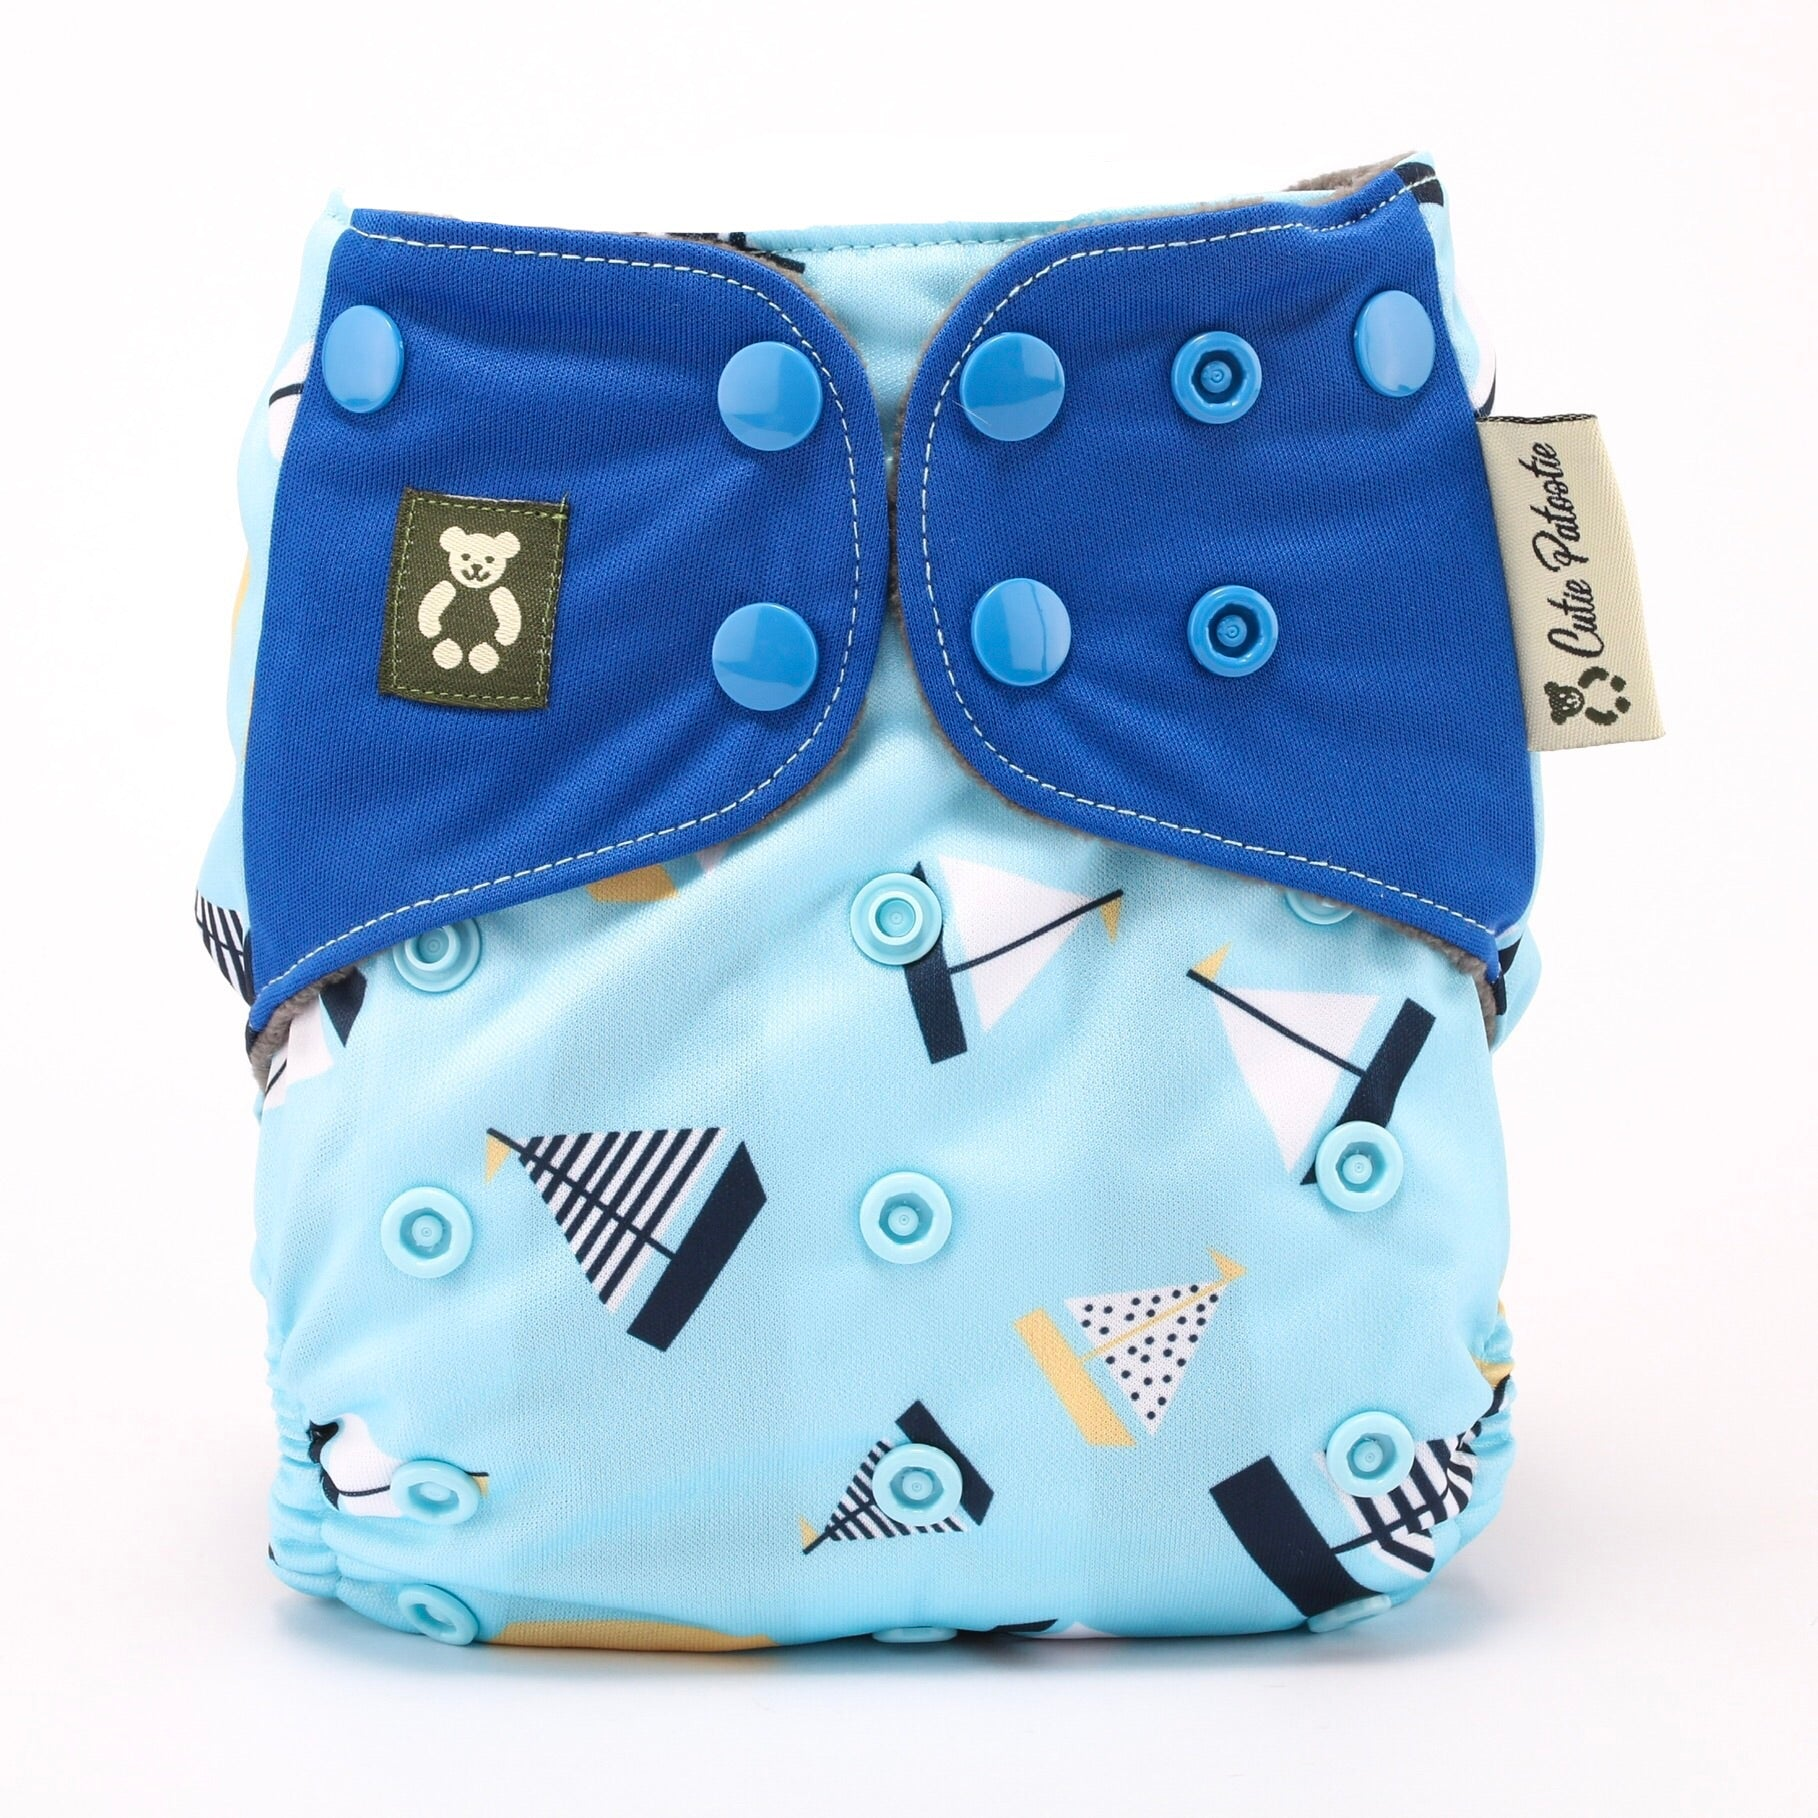 Marina Stroll - Cutie Patootie FlexiNappy Premium Best Cloth Diapers